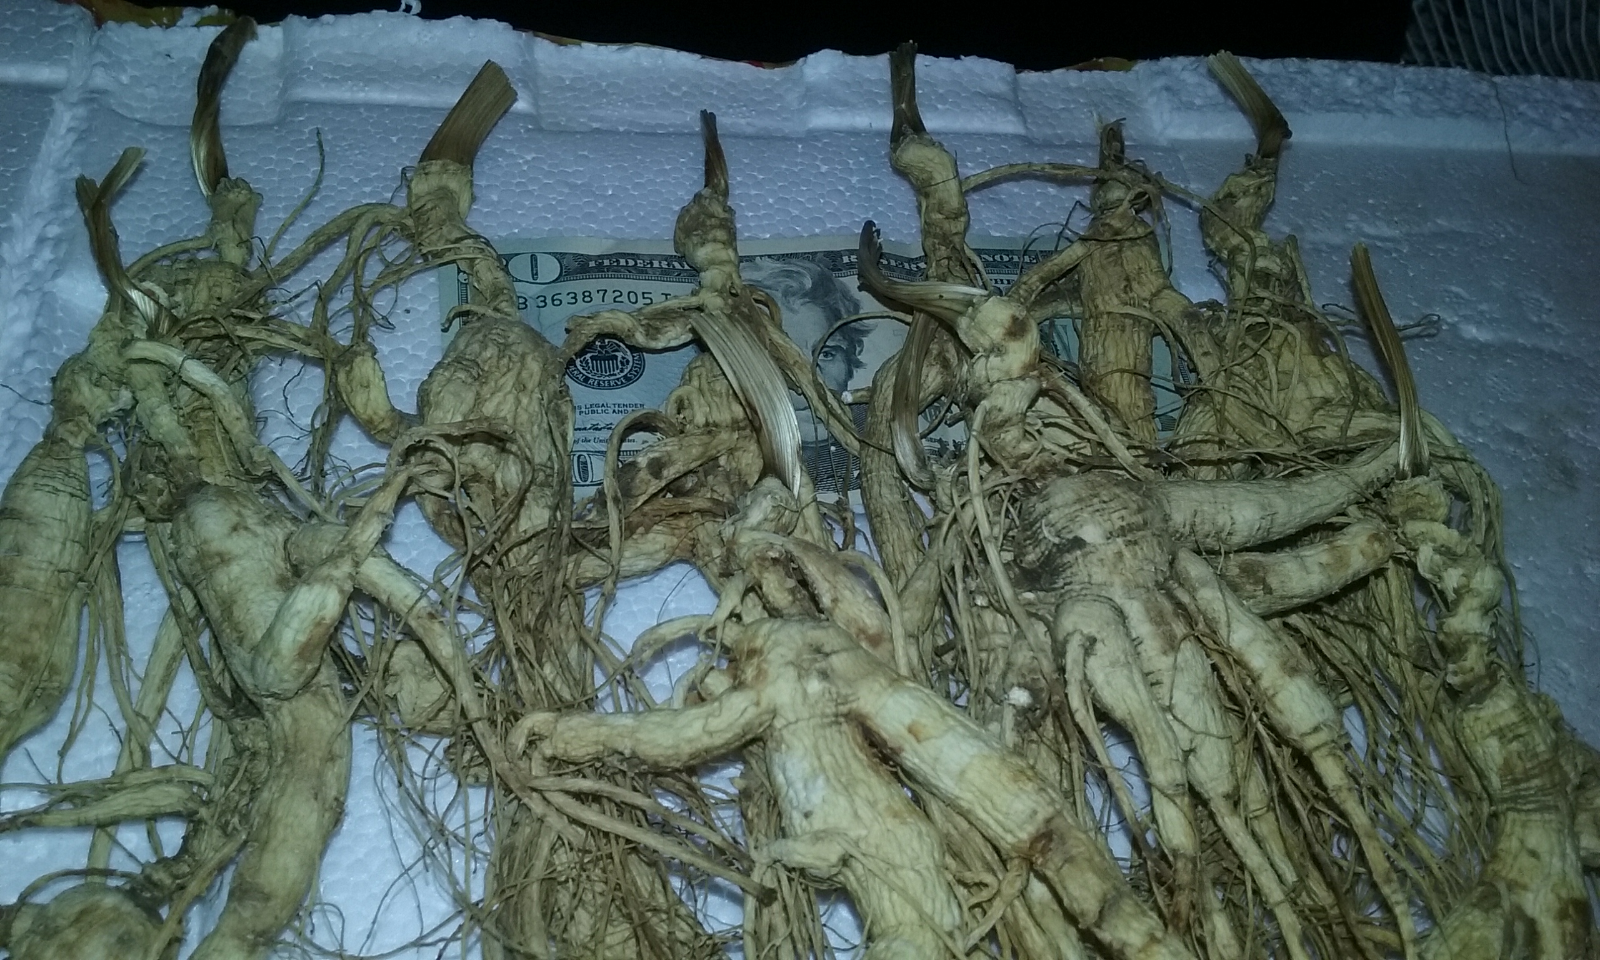 ALL BIG  WILD WISCONSIN GINSENG ROOT 15-50 YEAR LONG NECK 28 GRAMS SUPER STRONG